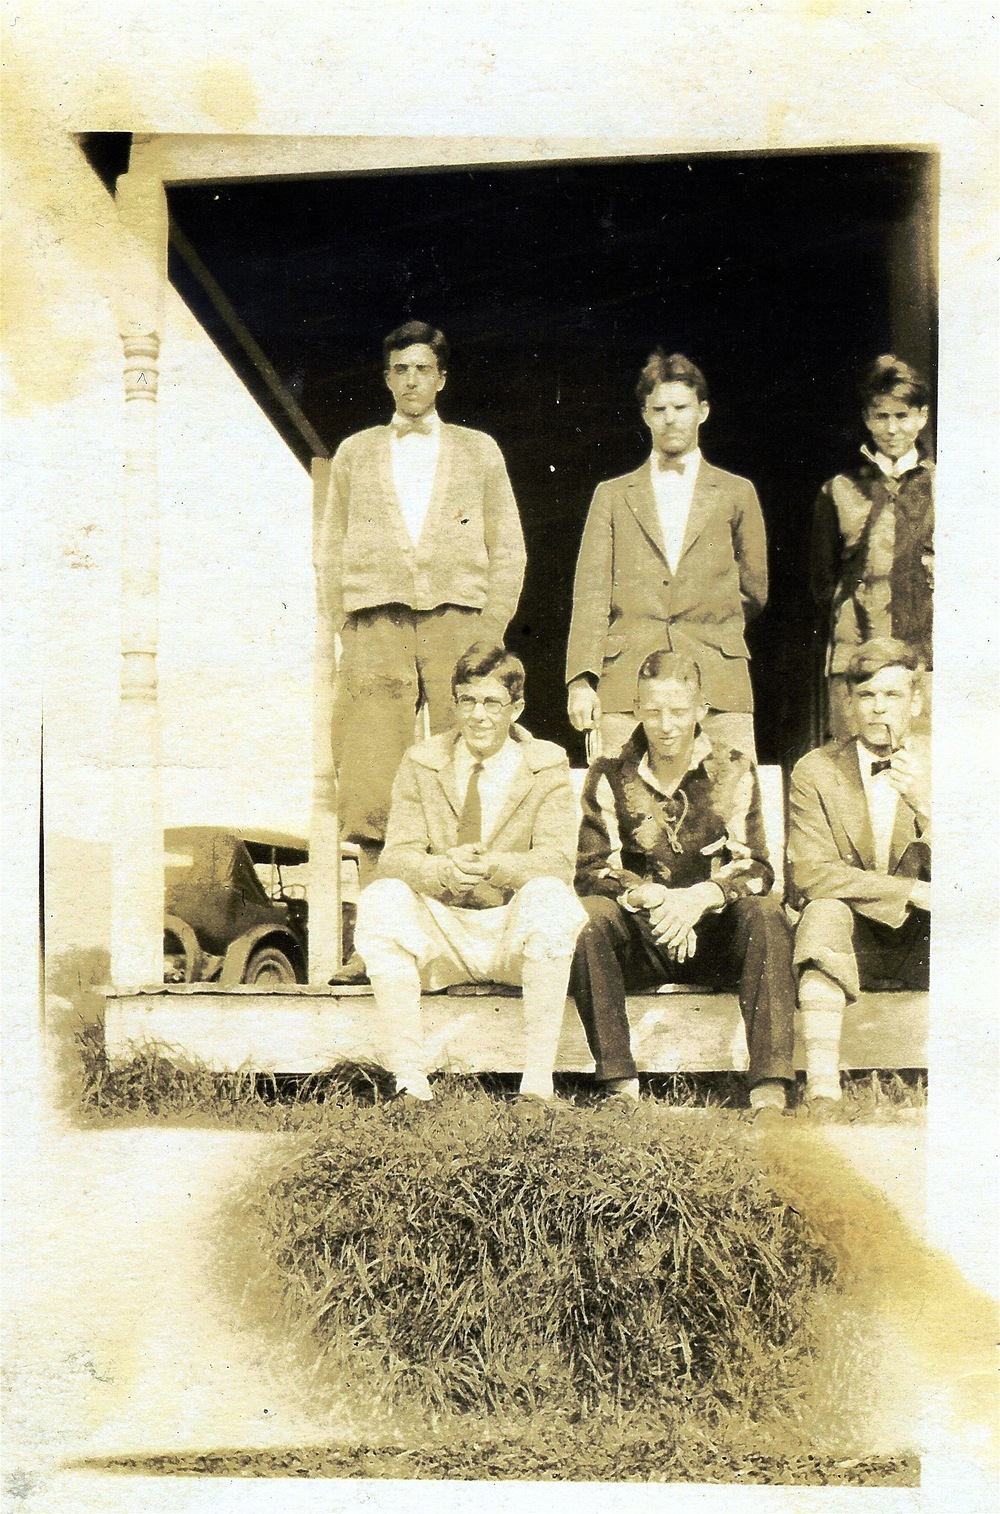 1926 Trail Crew at Locust Cottage